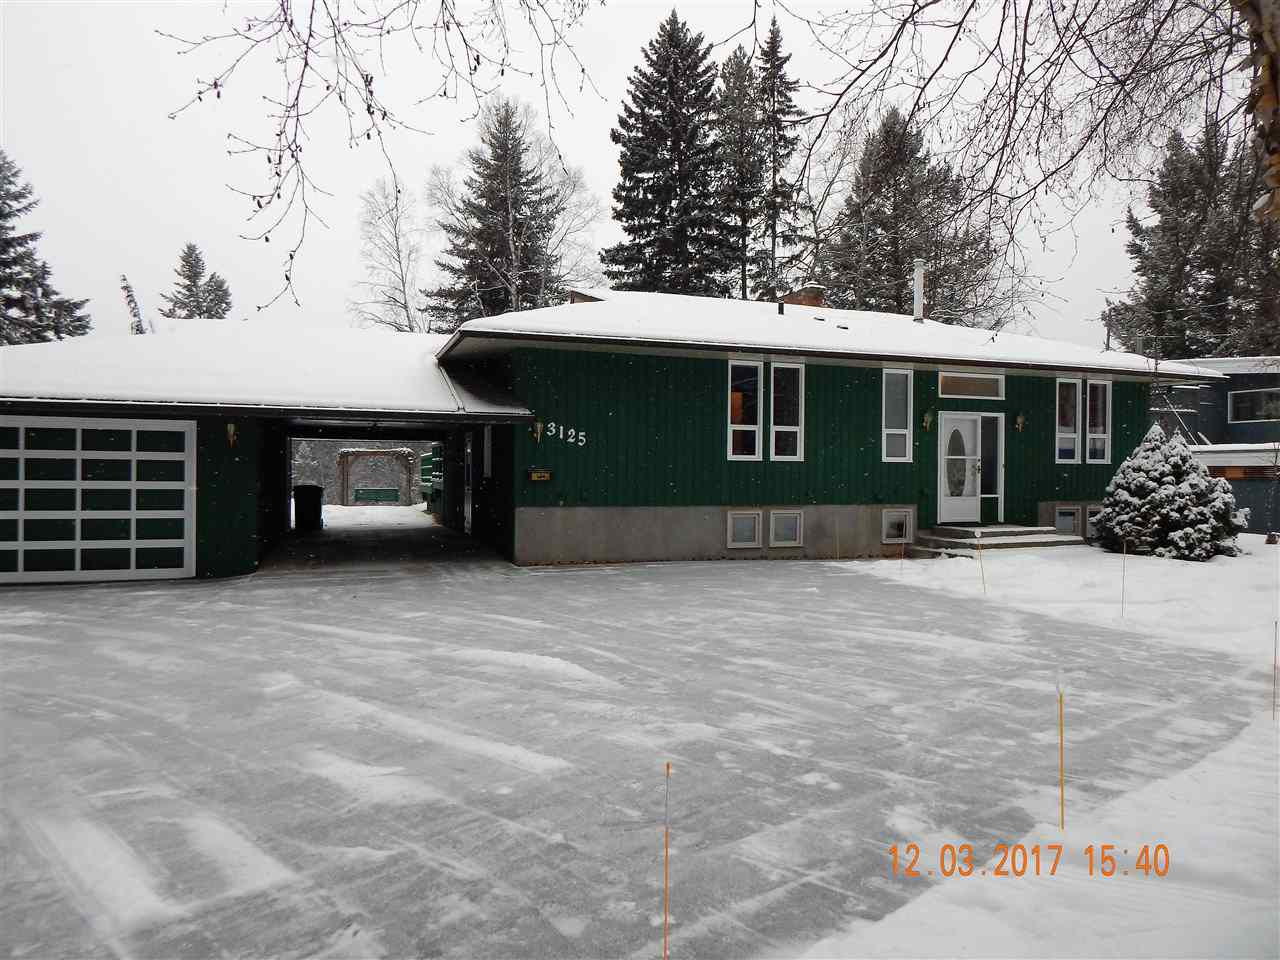 """Main Photo: 3125 RIVERVIEW Road in Prince George: Nechako Bench House for sale in """"NECHAKO BENCH"""" (PG City North (Zone 73))  : MLS®# R2138180"""